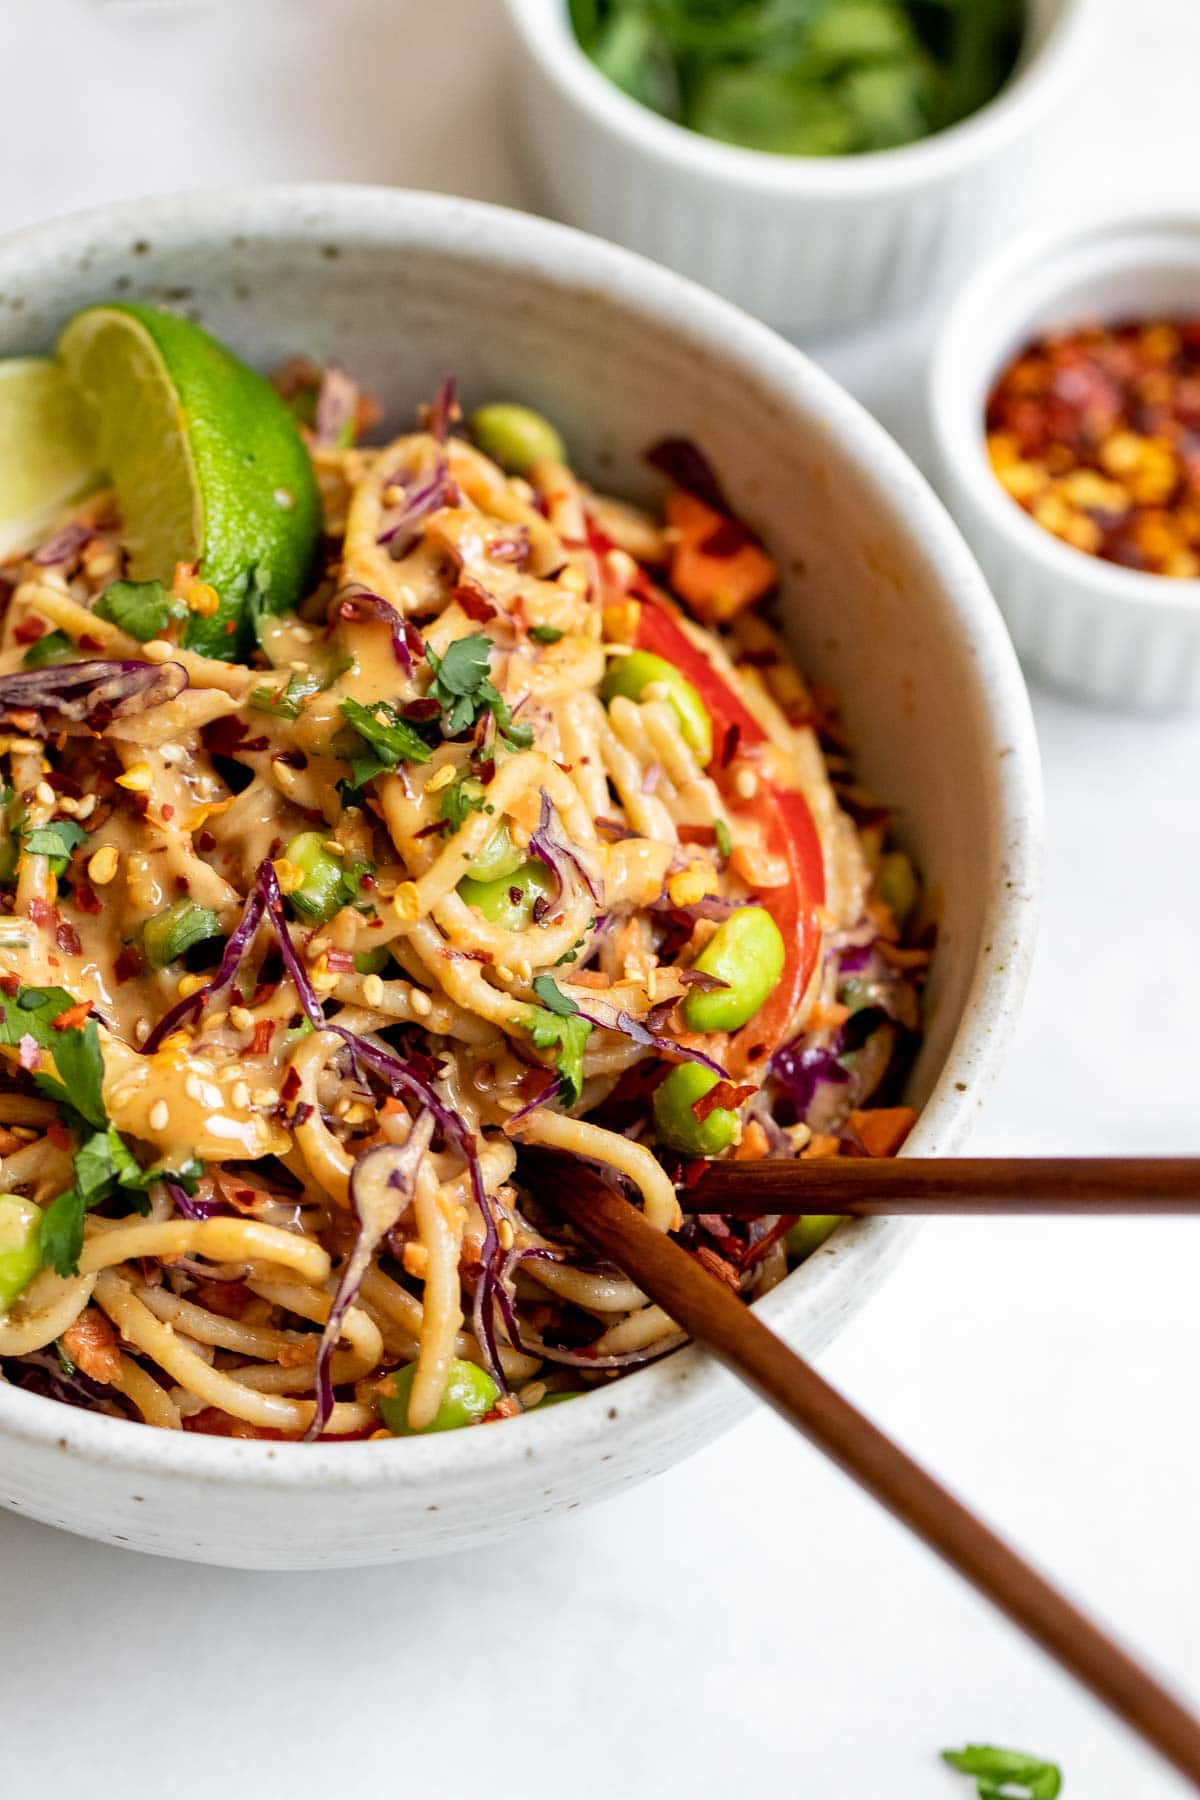 Small speckled bowl with peanut noodle salad with lime wedges.